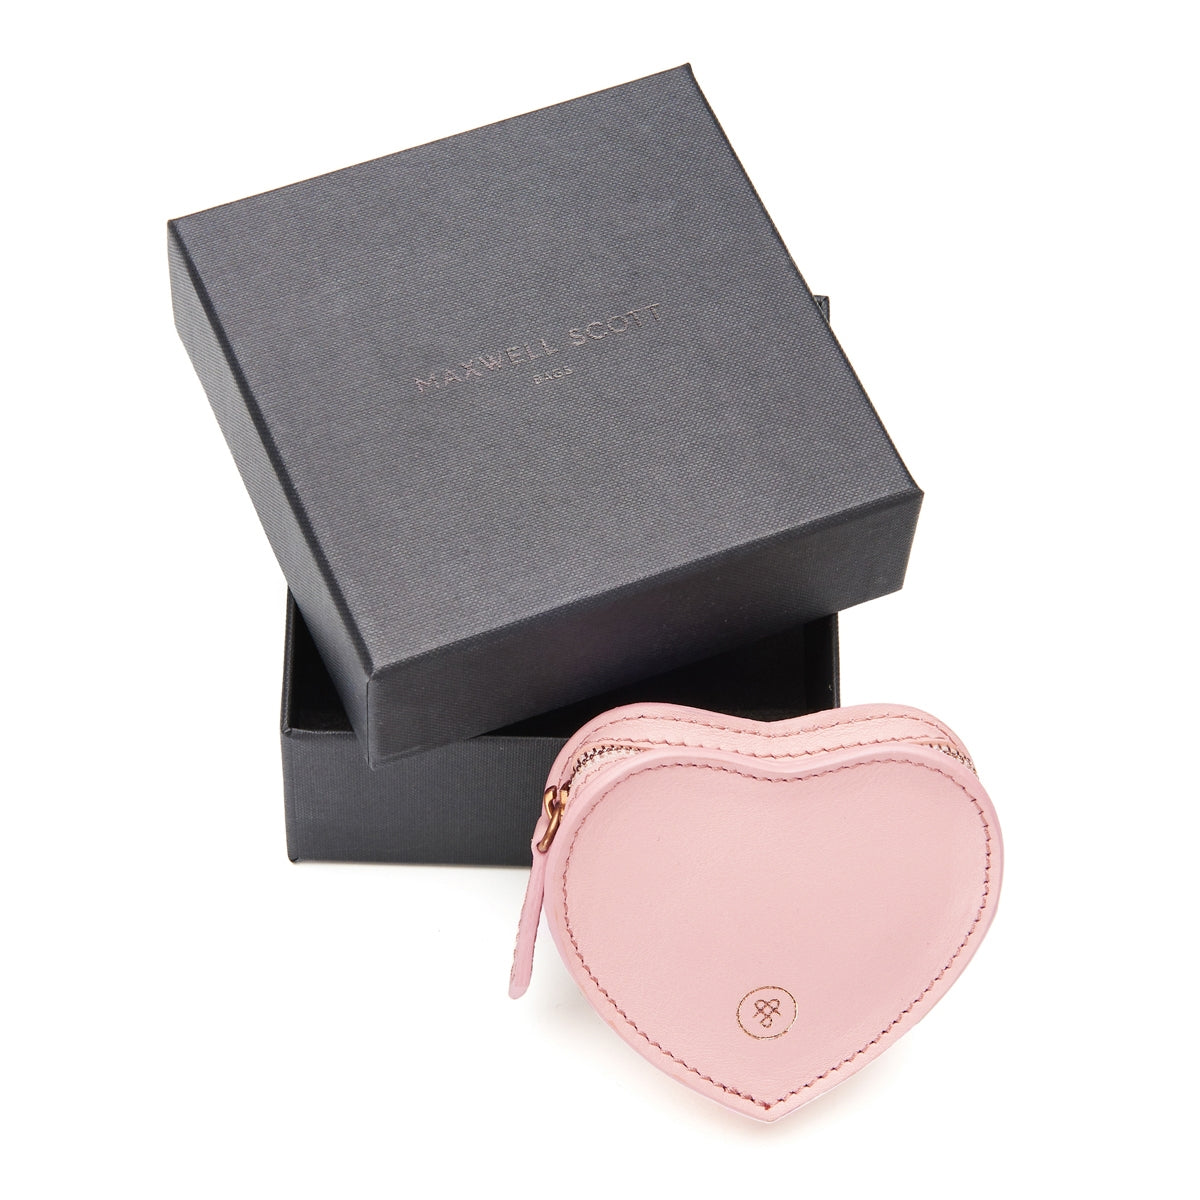 Image 6 of the 'Mirabella' Heart Shaped Pink Coin Purse